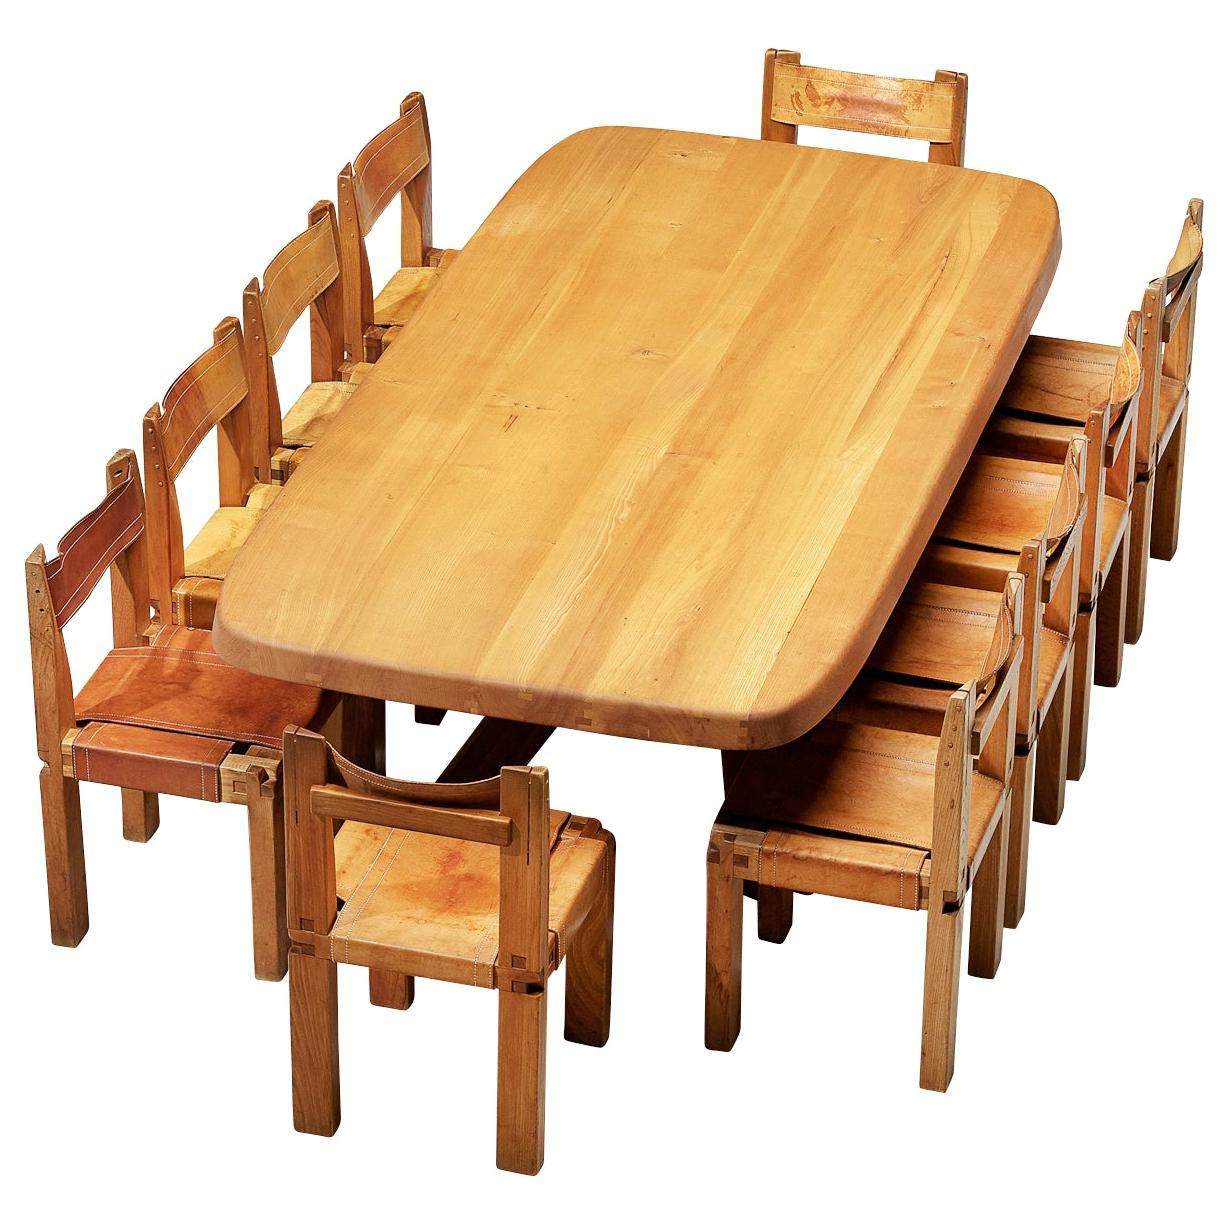 Pierre Chapo Dining Table T35D and S11 Chairs Dining Chairs